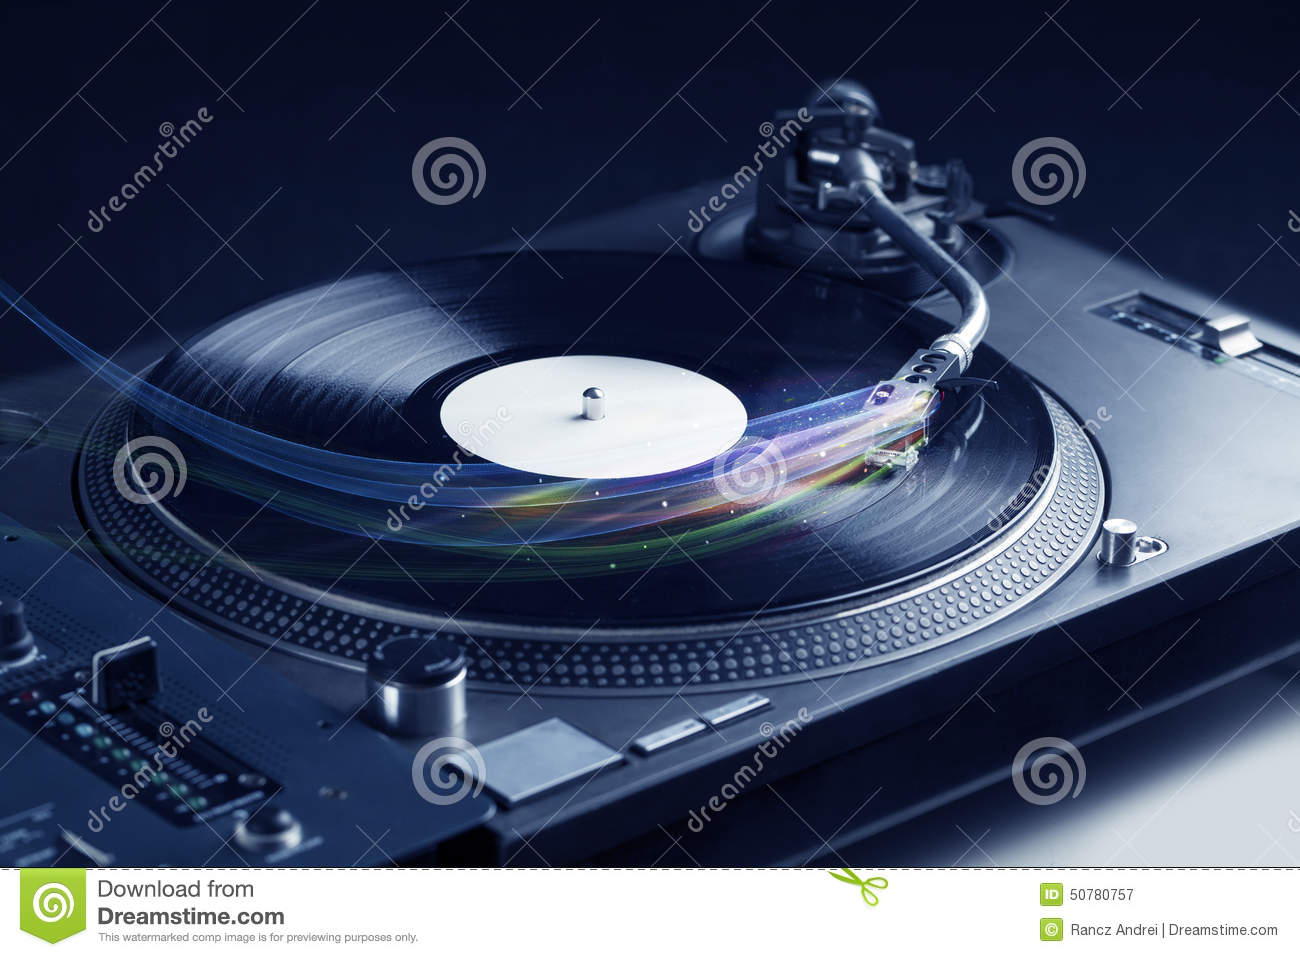 Good Wallpaper Music Disk - music-player-playing-vinyl-music-colourful-abstract-lines-concept-background-50780757  Picture_569312.jpg